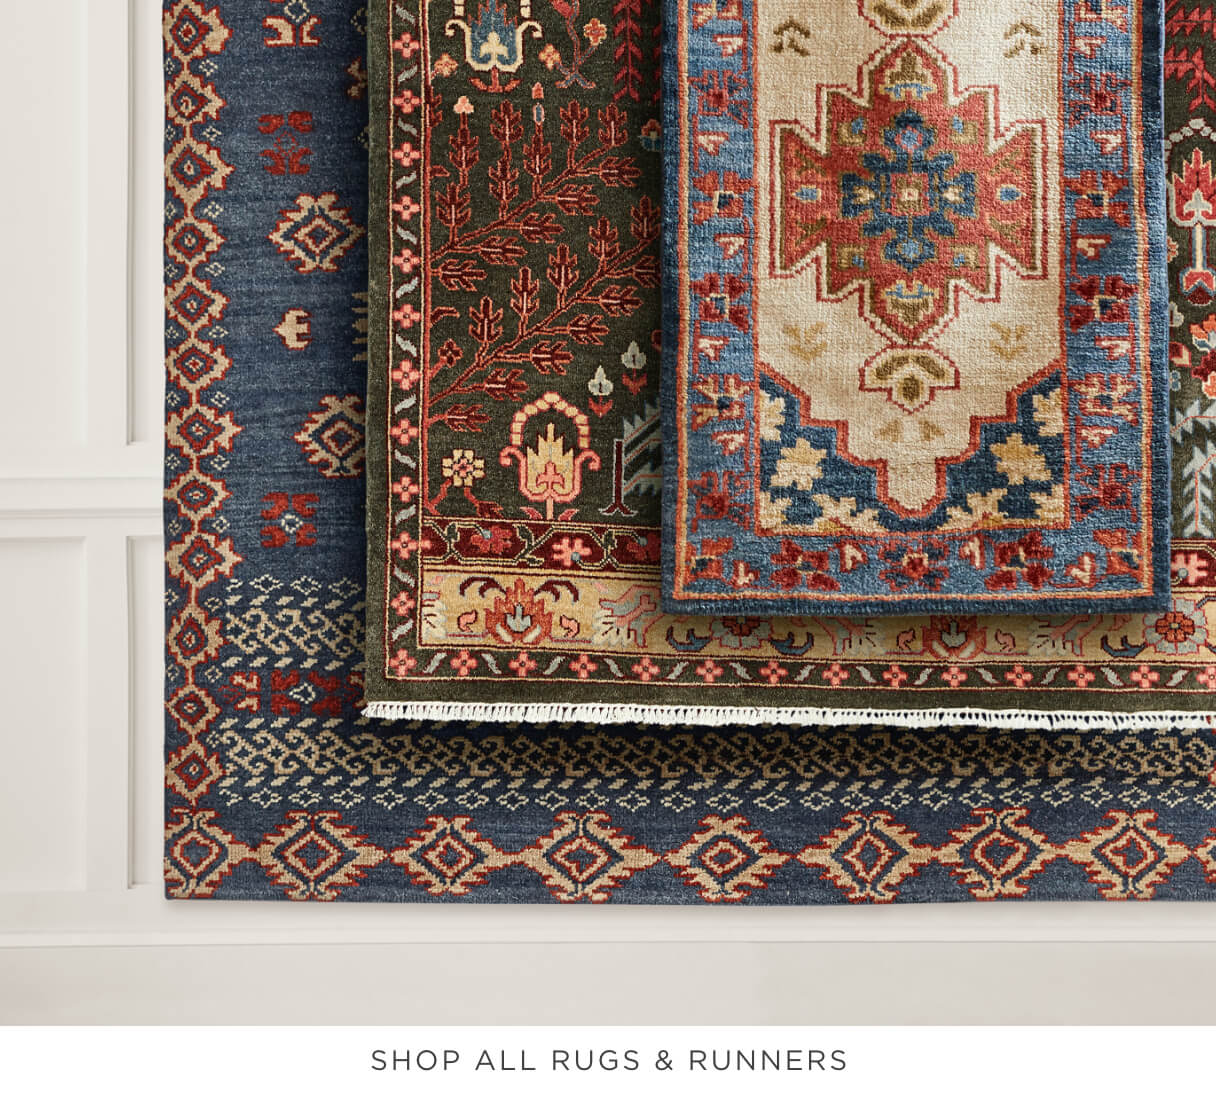 Shop All Rugs & Runners